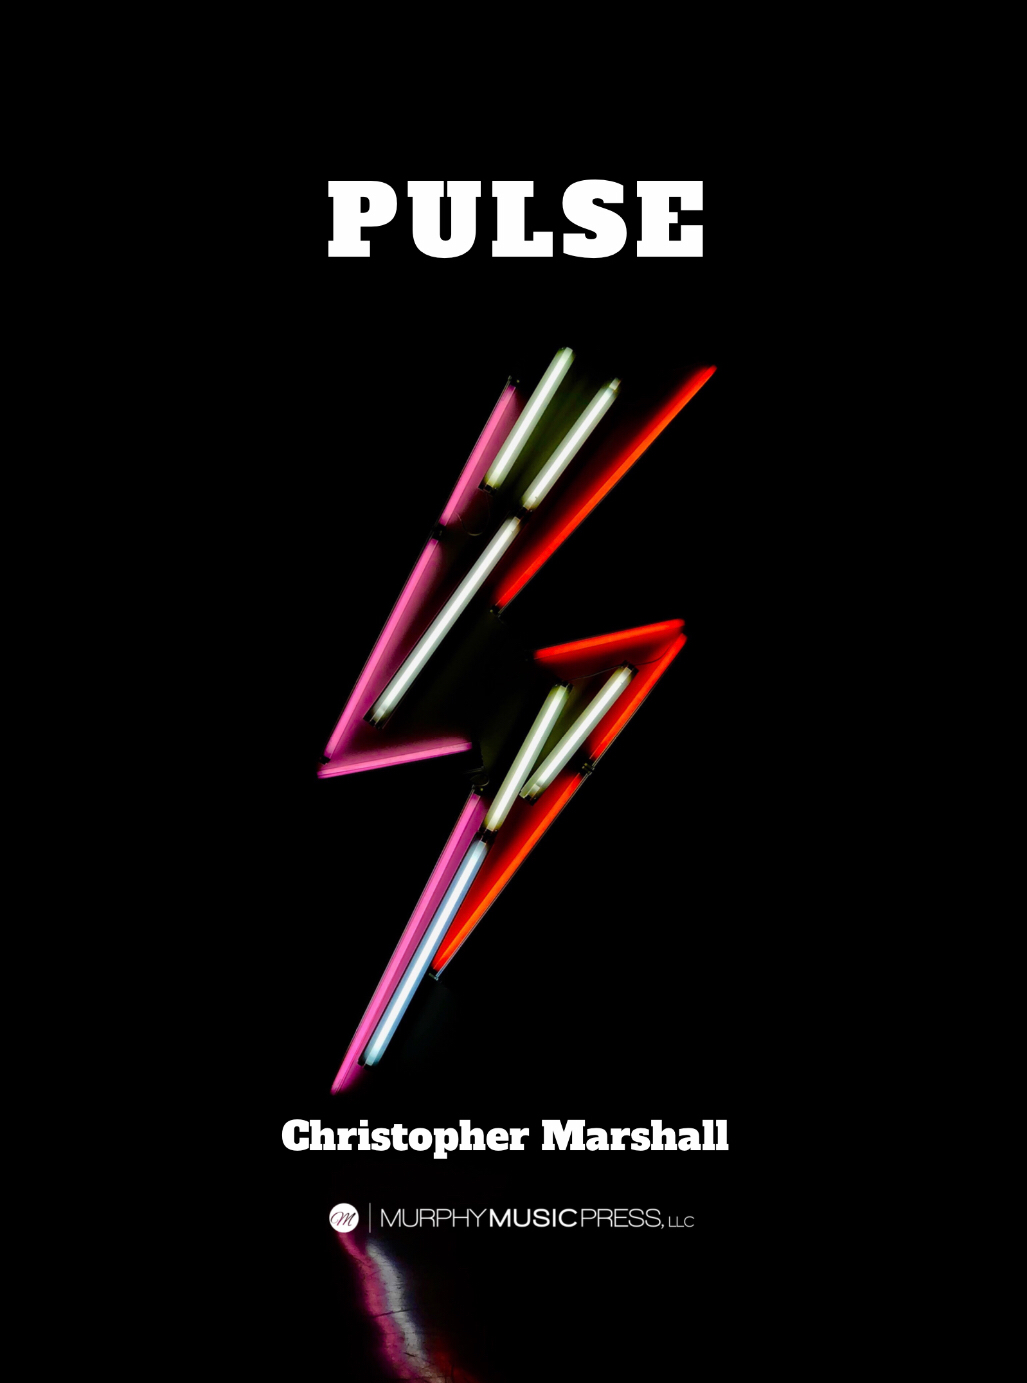 Pulse by Christopher Marshall